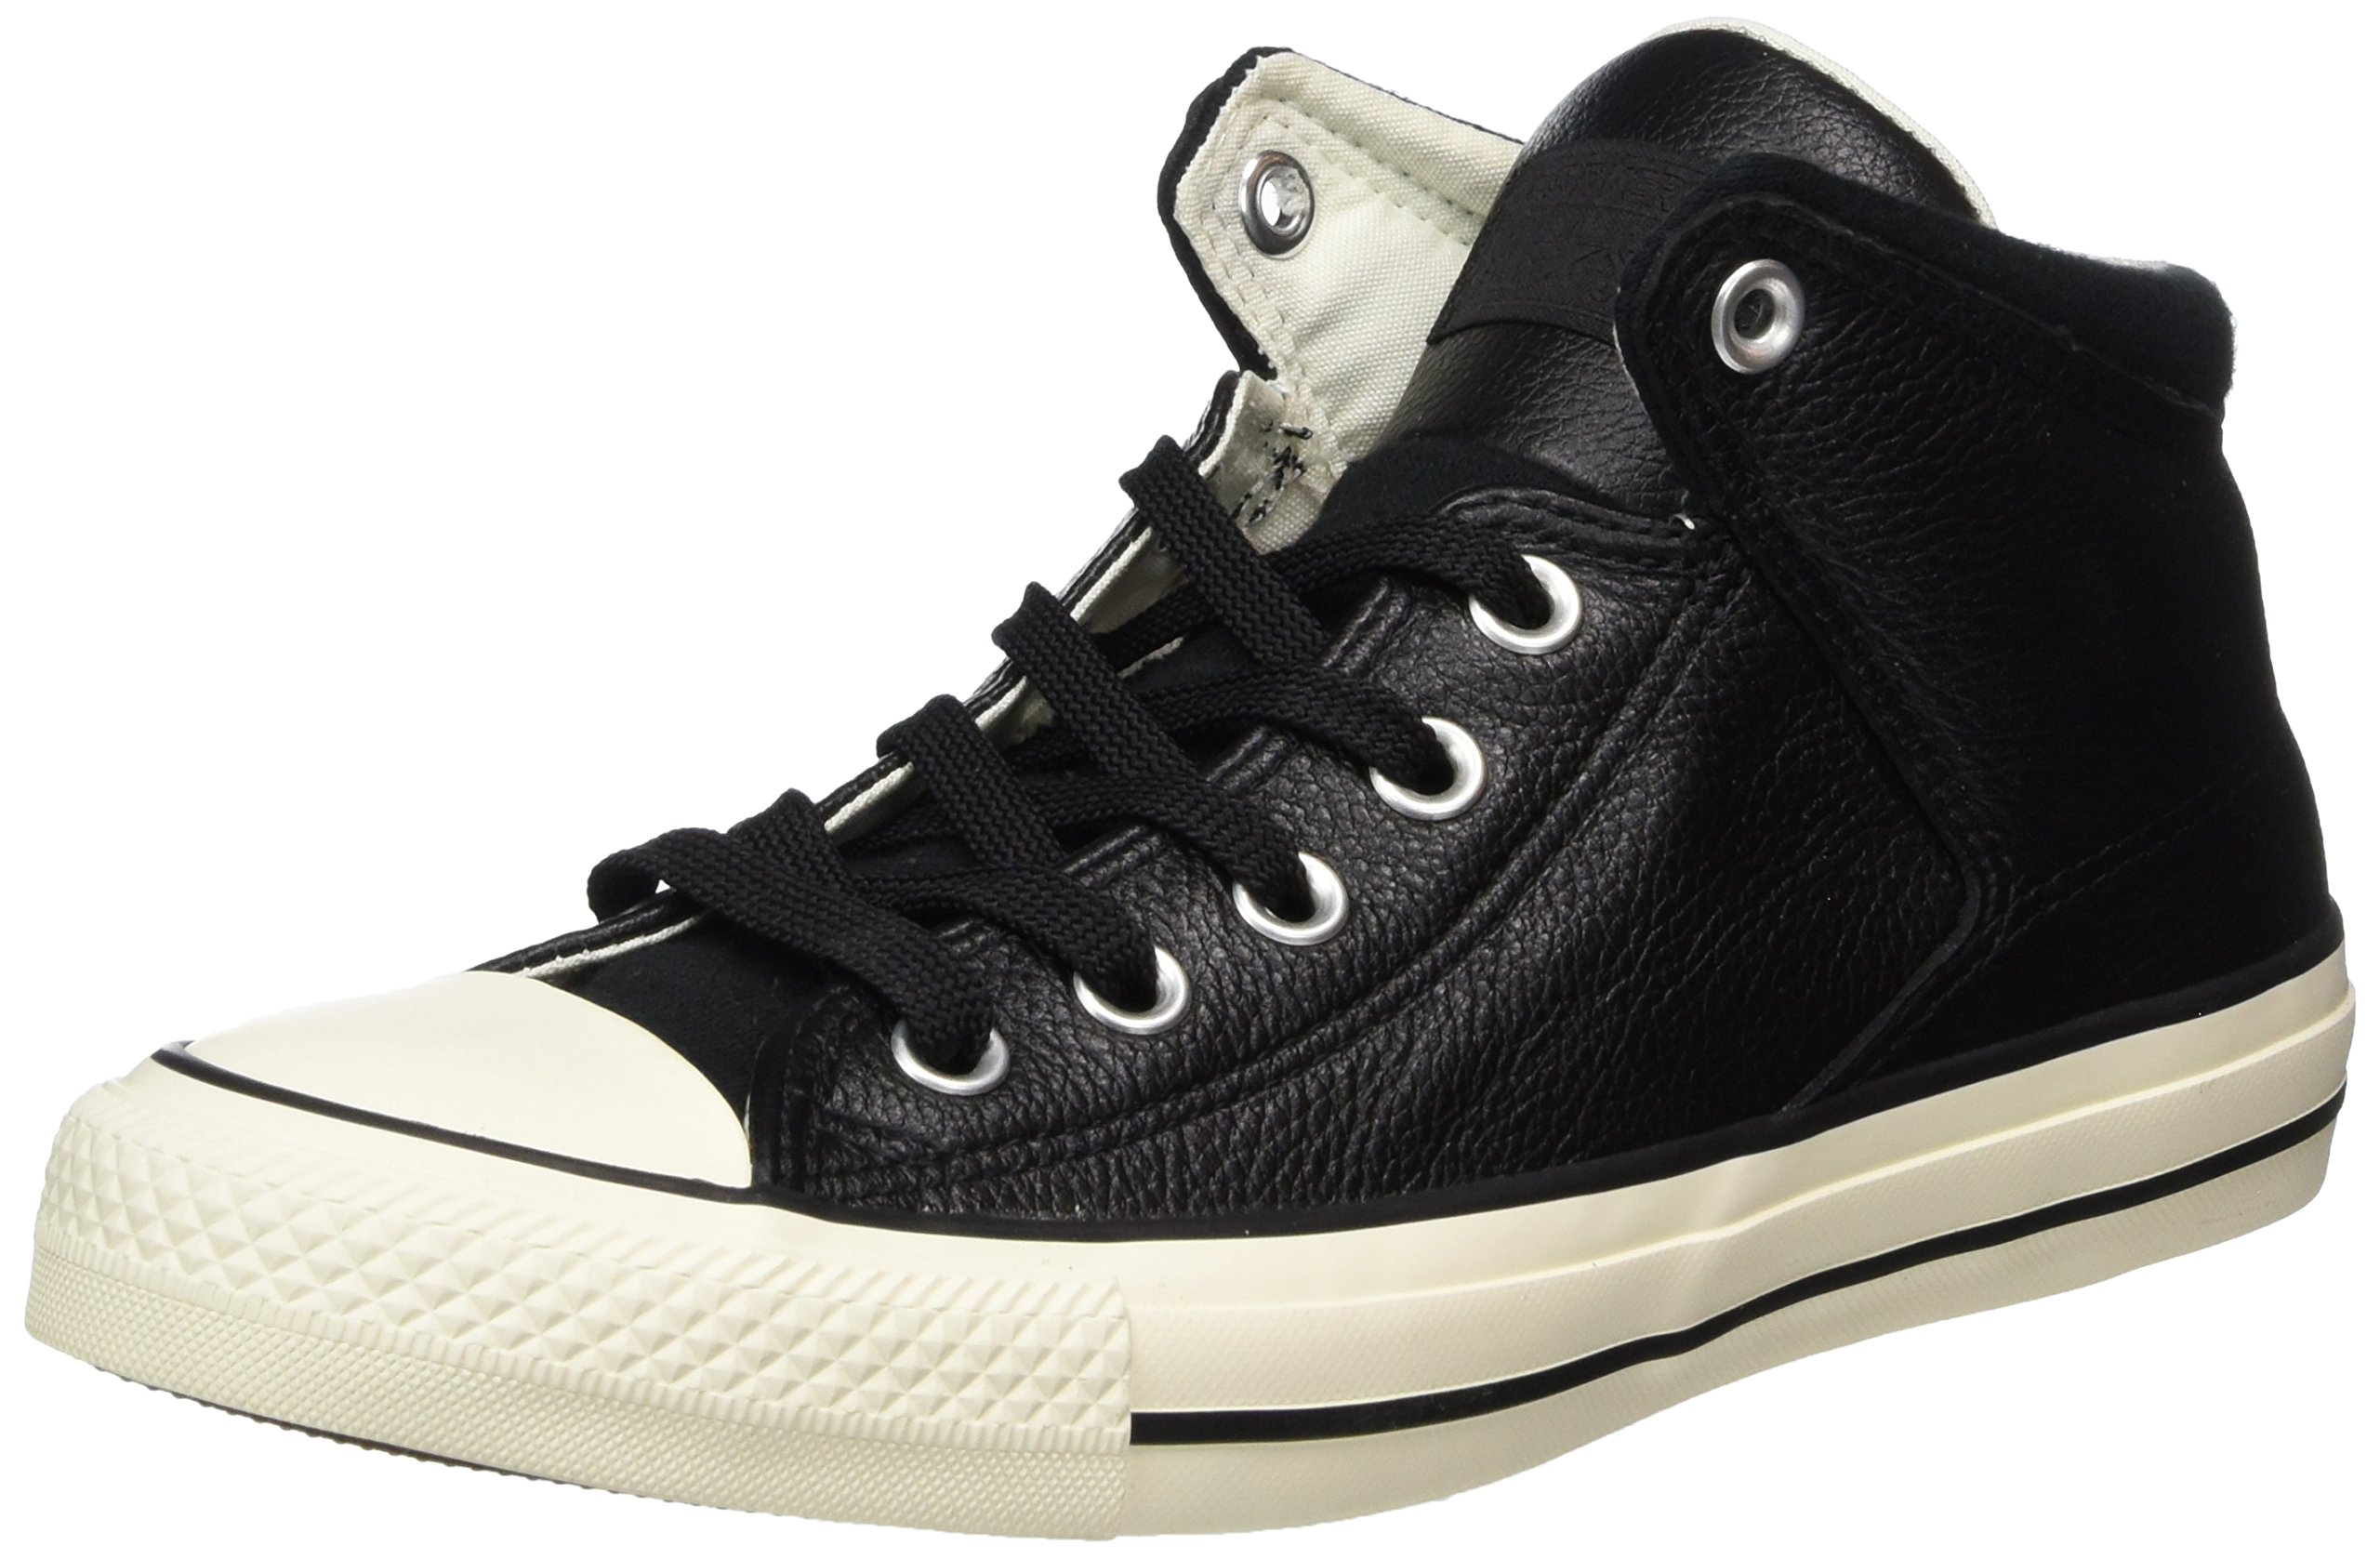 85fae7d24439c1 Galleon - Converse Mens Chuck Taylor All Star Street Hi - Tumbled Leather  Black Black Egret Sneaker - 9 Men - 11 Women